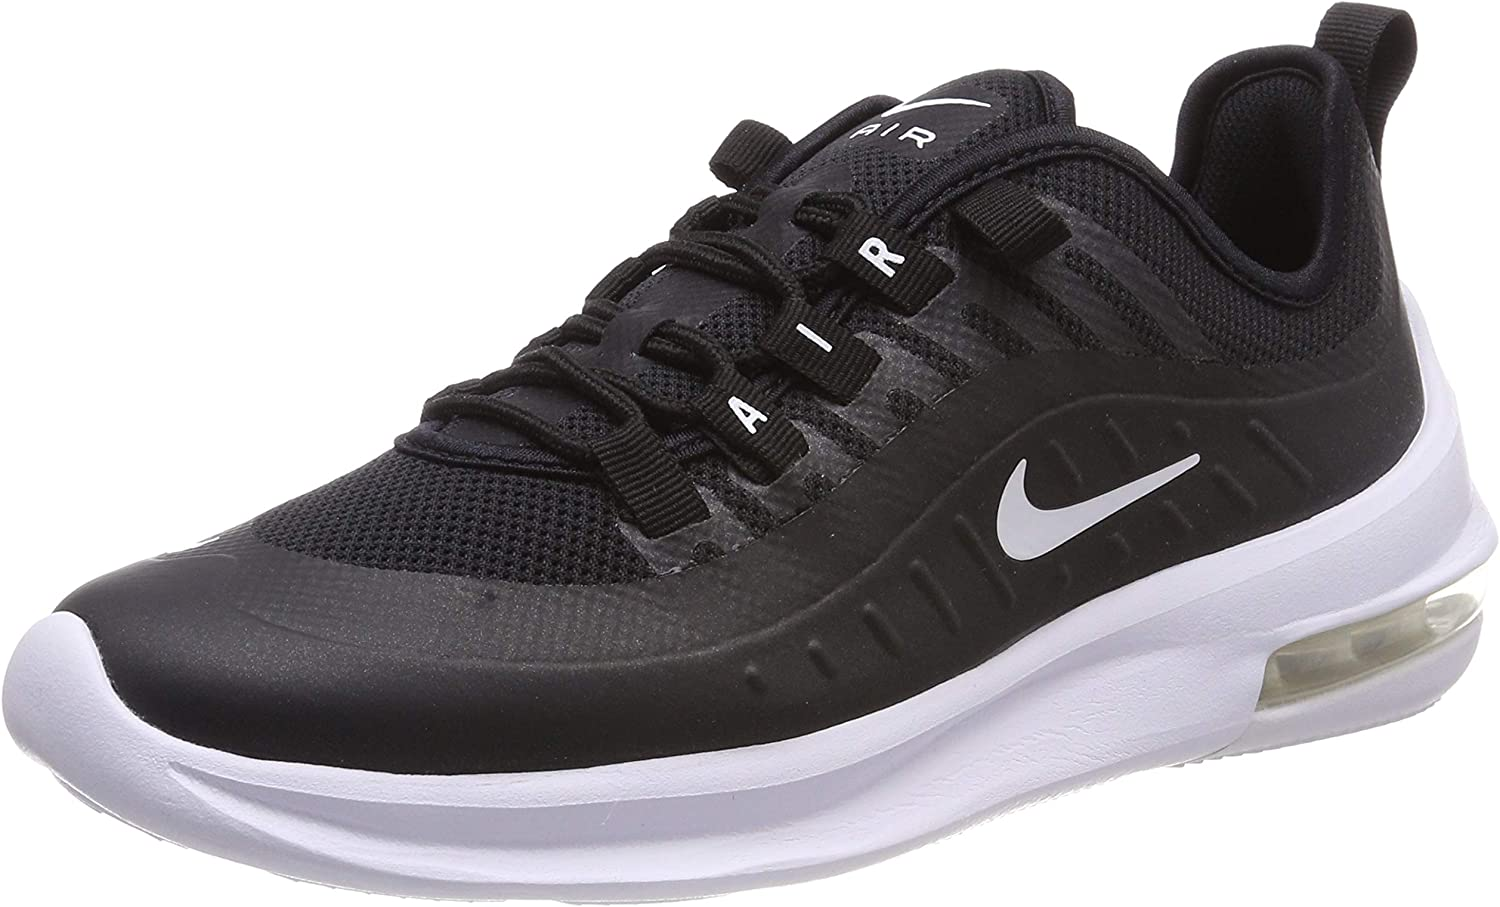 Nike Men s Running Shoes, Black, 8 m us